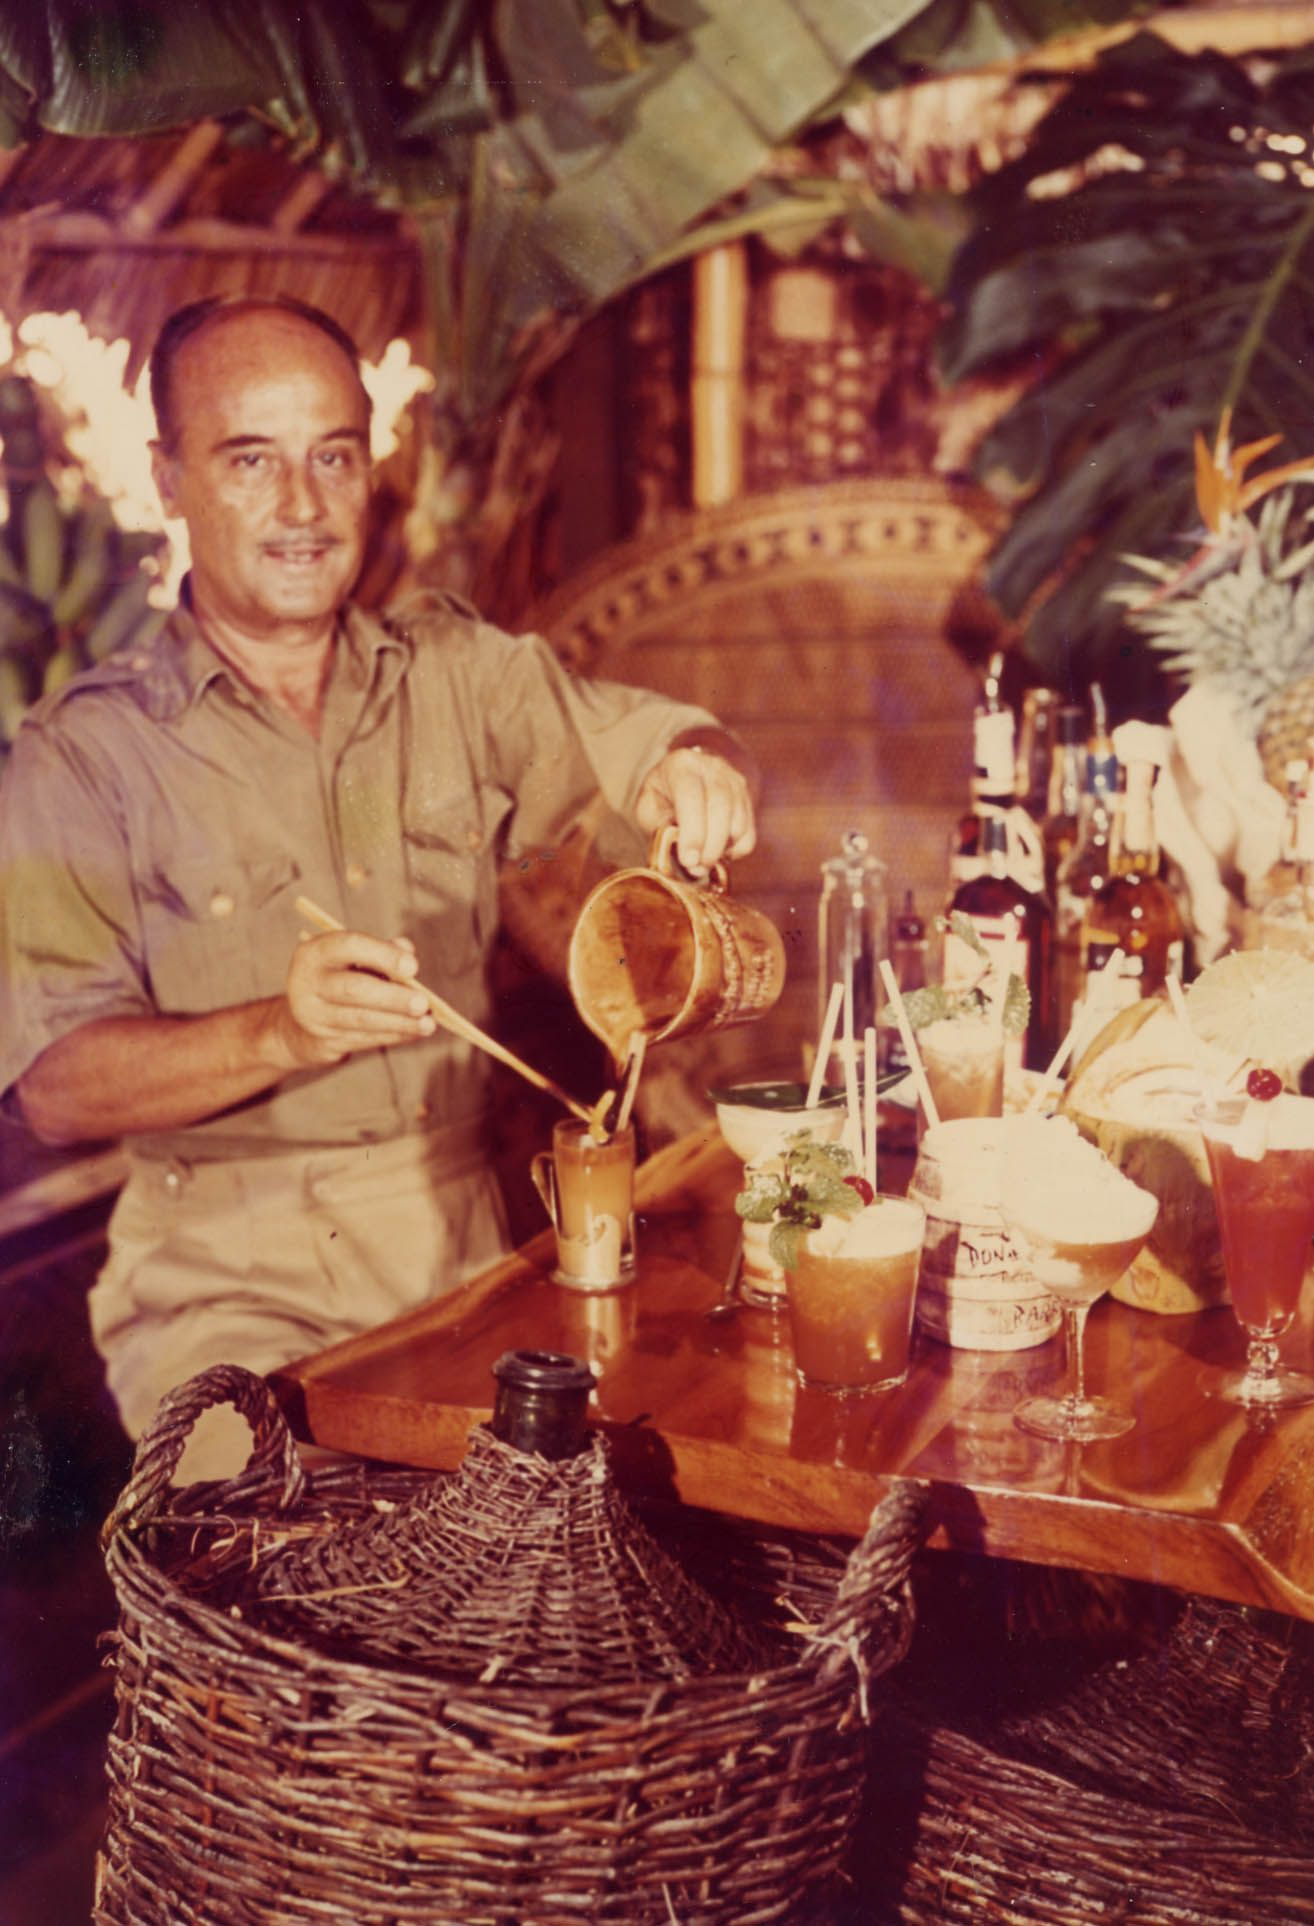 The one and only, Donn the Beachcomber. #tiki legend ...